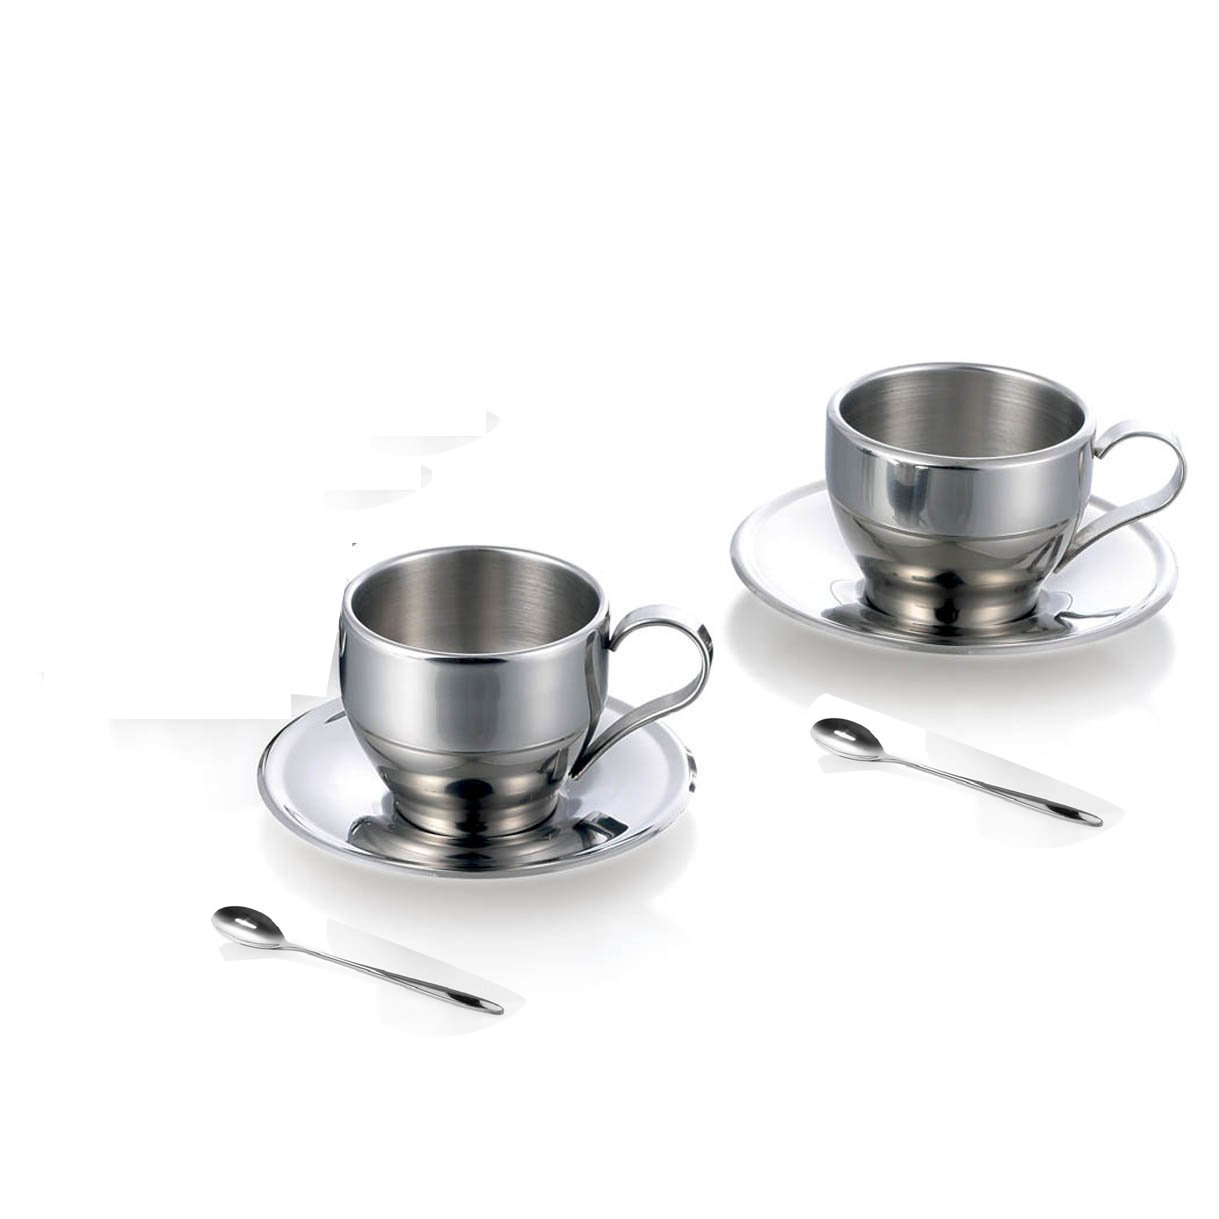 Jasni Stainless Steel Coffee Cup Coffee Mugs Espresso Cups and Great Cappuccino Cups with Spoon and Saucer Gift Idea for Coffee and Tea Lovers (2 packs)